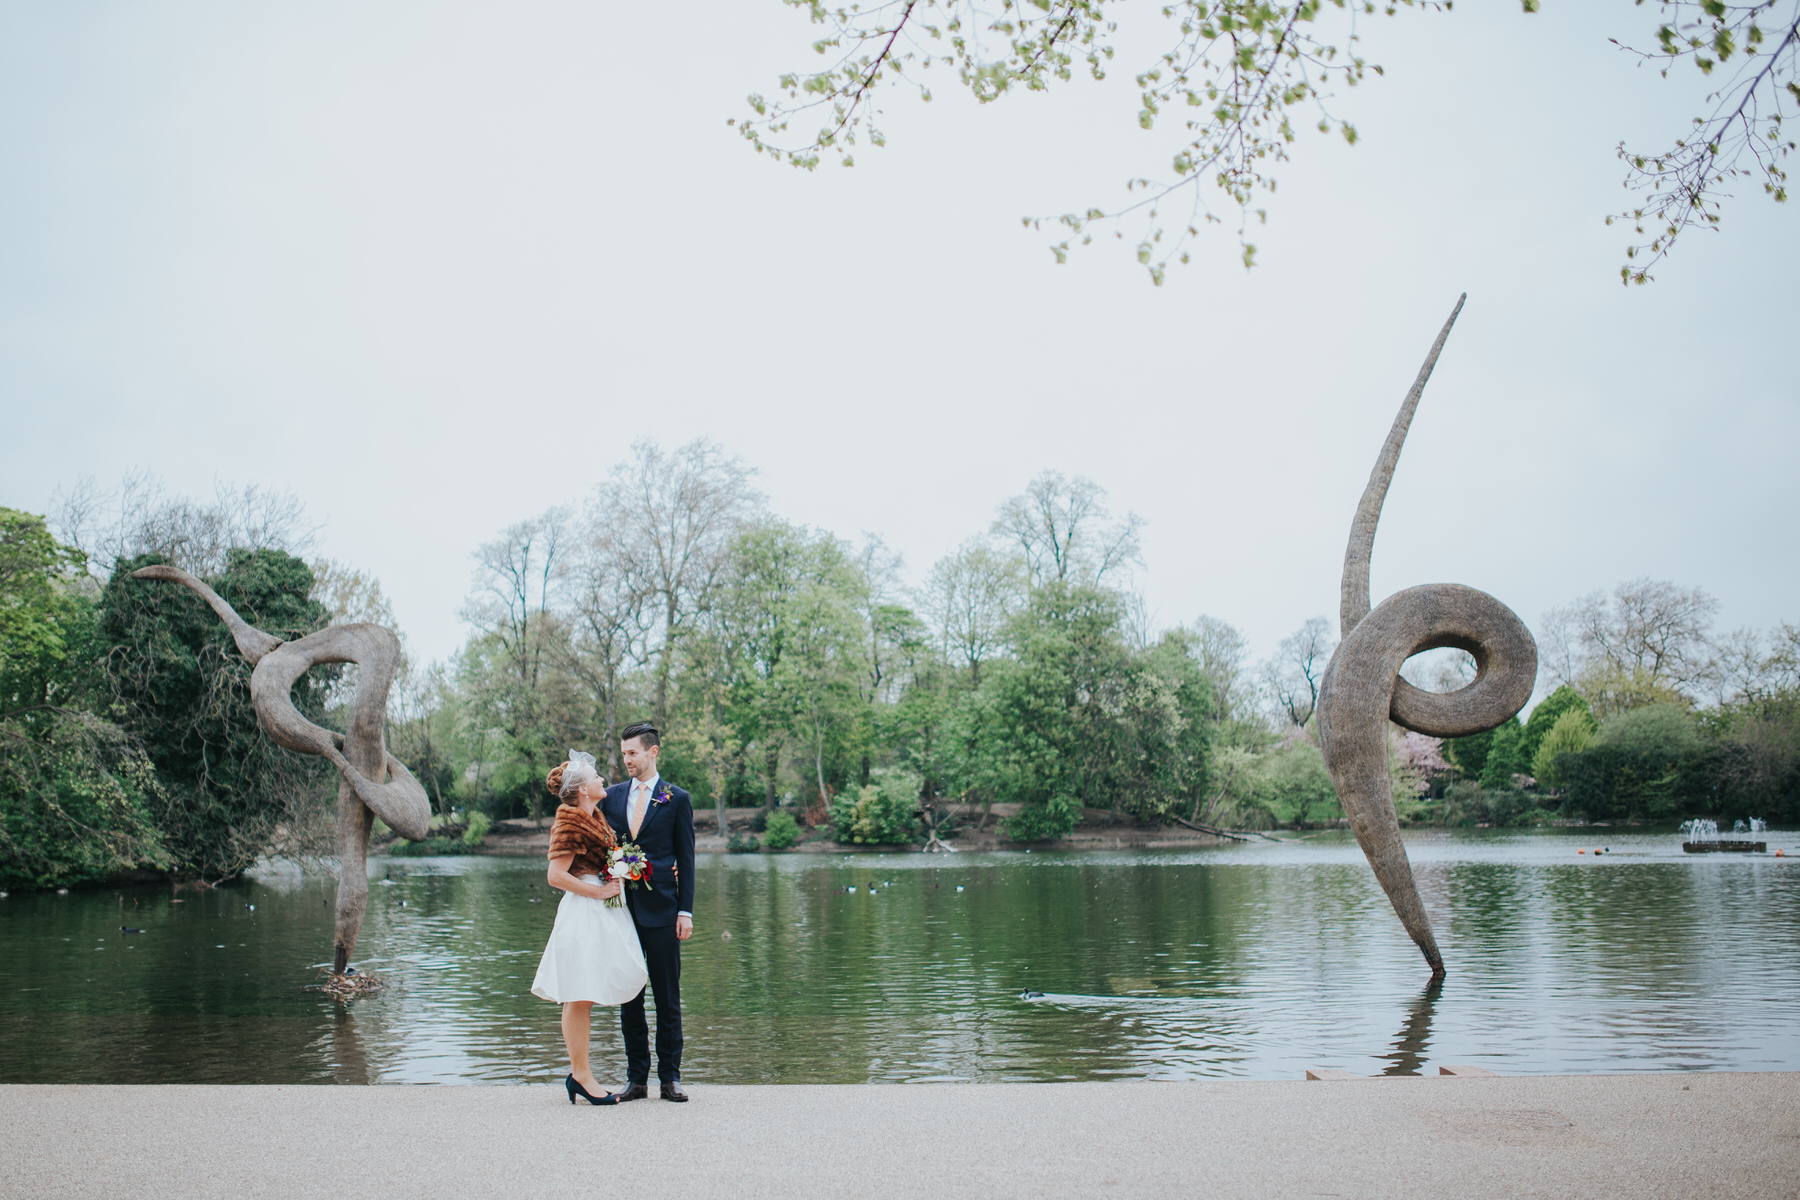 MS-Londesborough-Pub-wedding-Hackney-alternative-photographer-152-just-married-quirky-bride-groom-lake-Victoria-Park.jpg